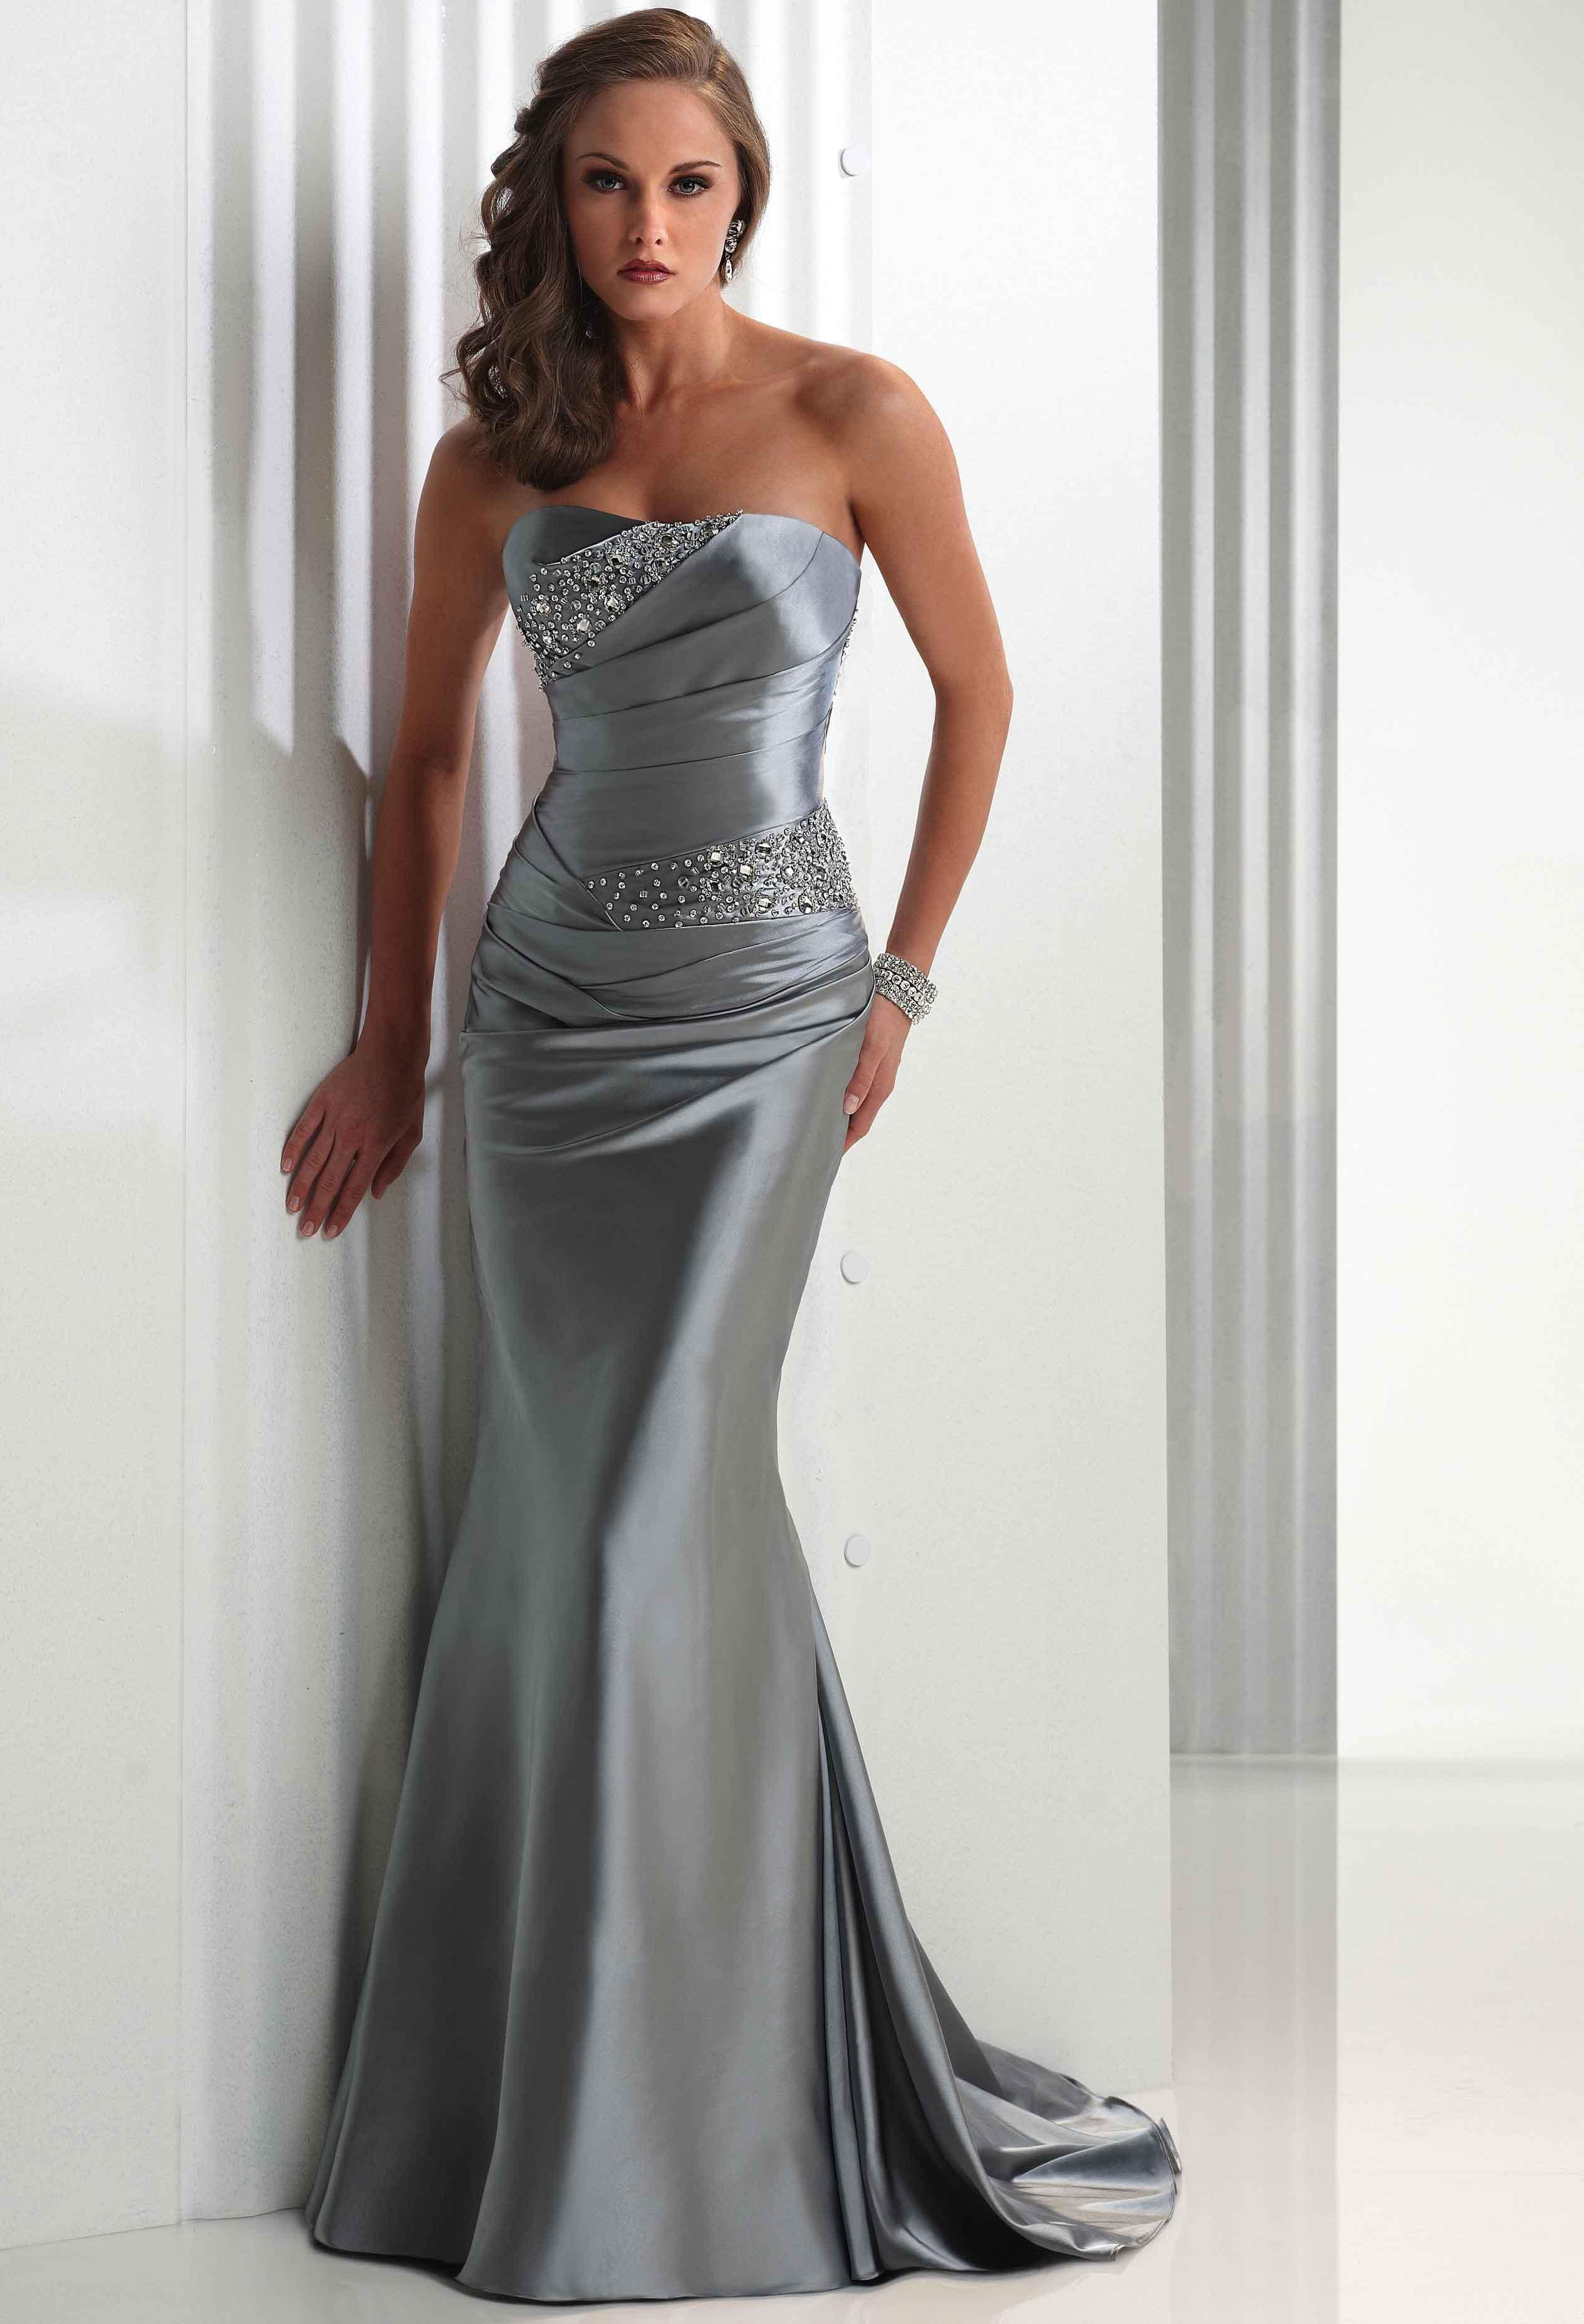 a75da930e509 Pin by Linda C. on Style   Strapless dress formal, Bridesmaid ...